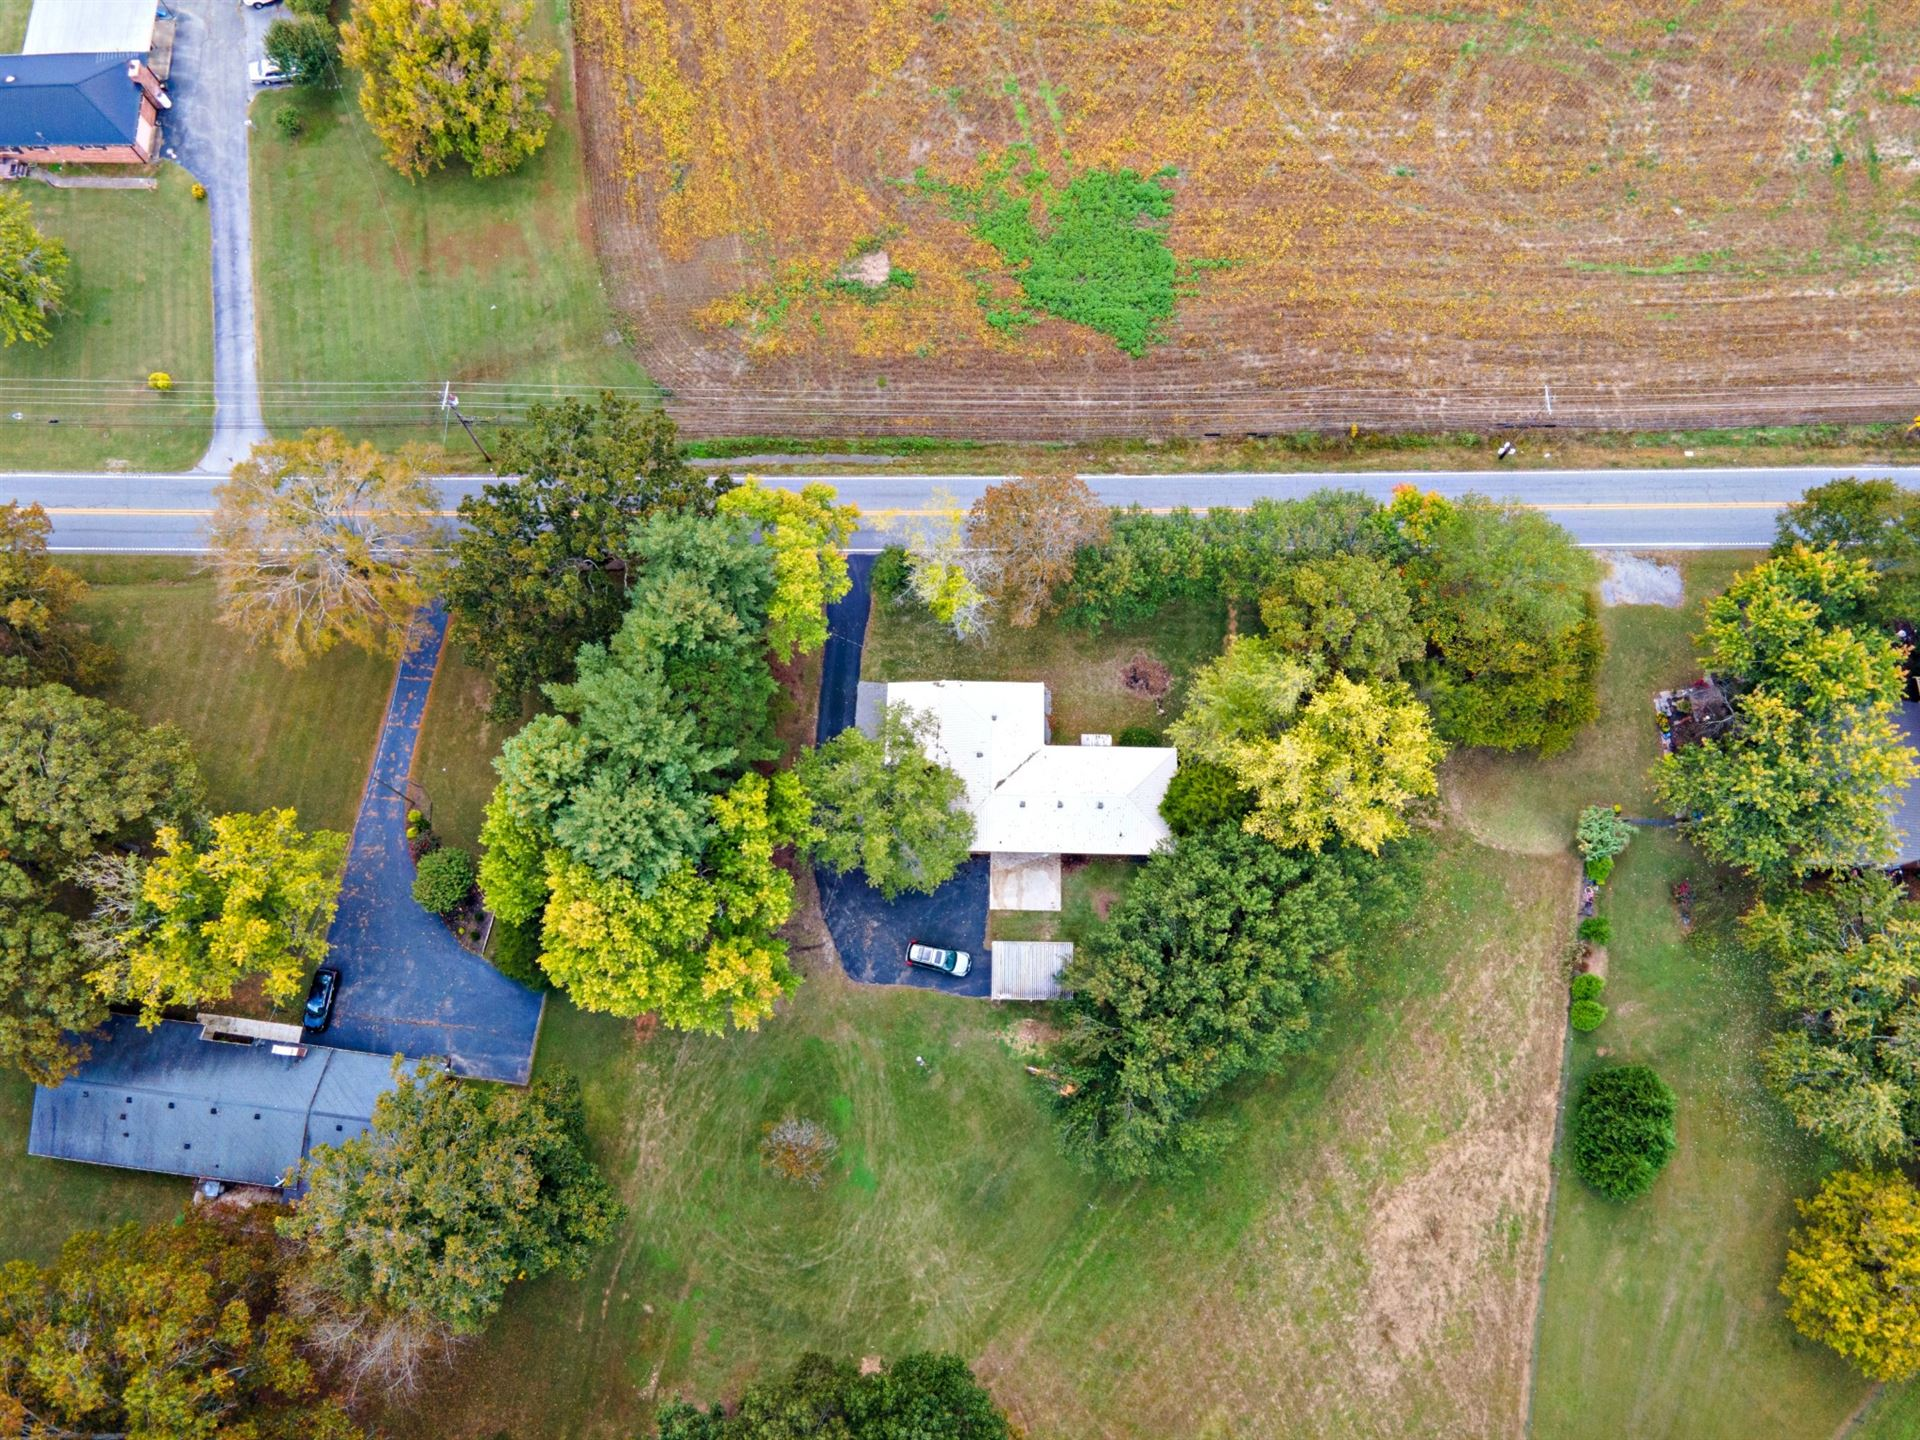 4620 Old Tullahoma Rd, Winchester, TN 37398 - MLS#: 2200532